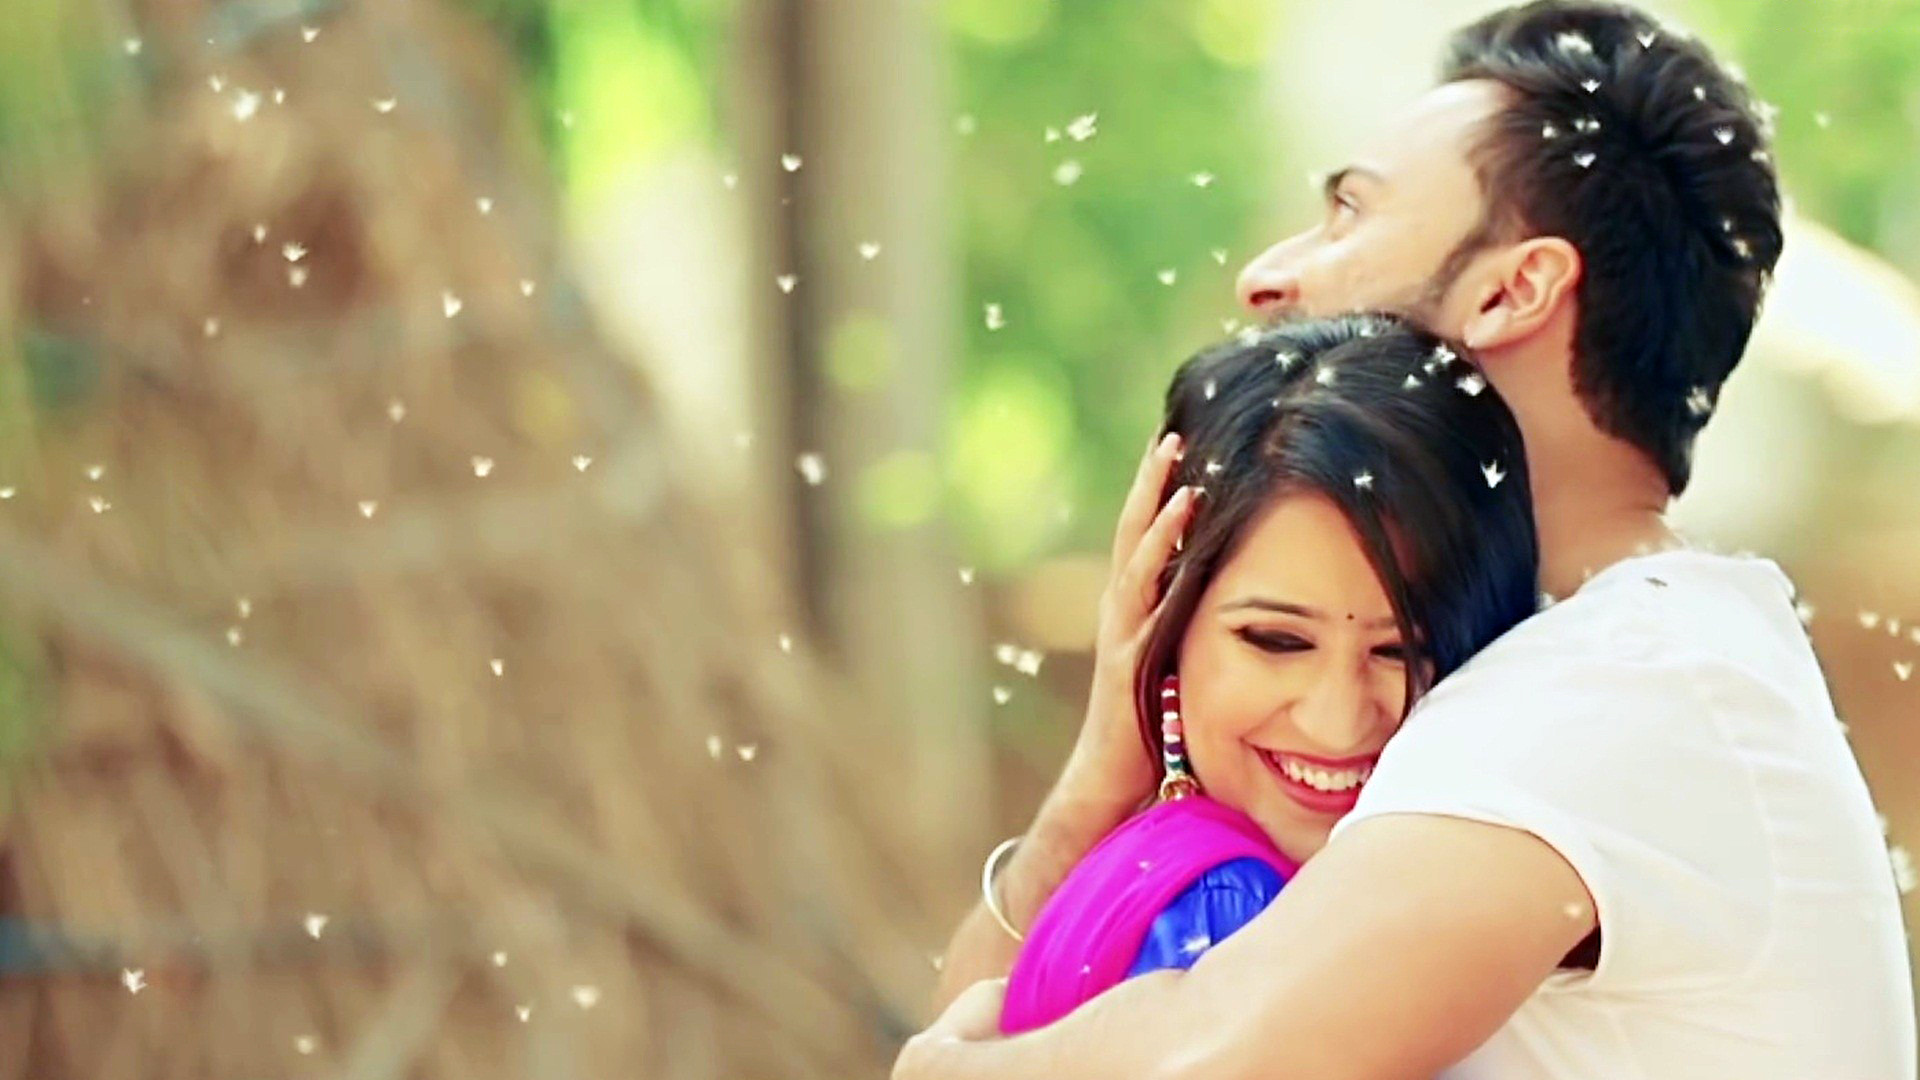 Cute Romantic Wallpapers 62 Images